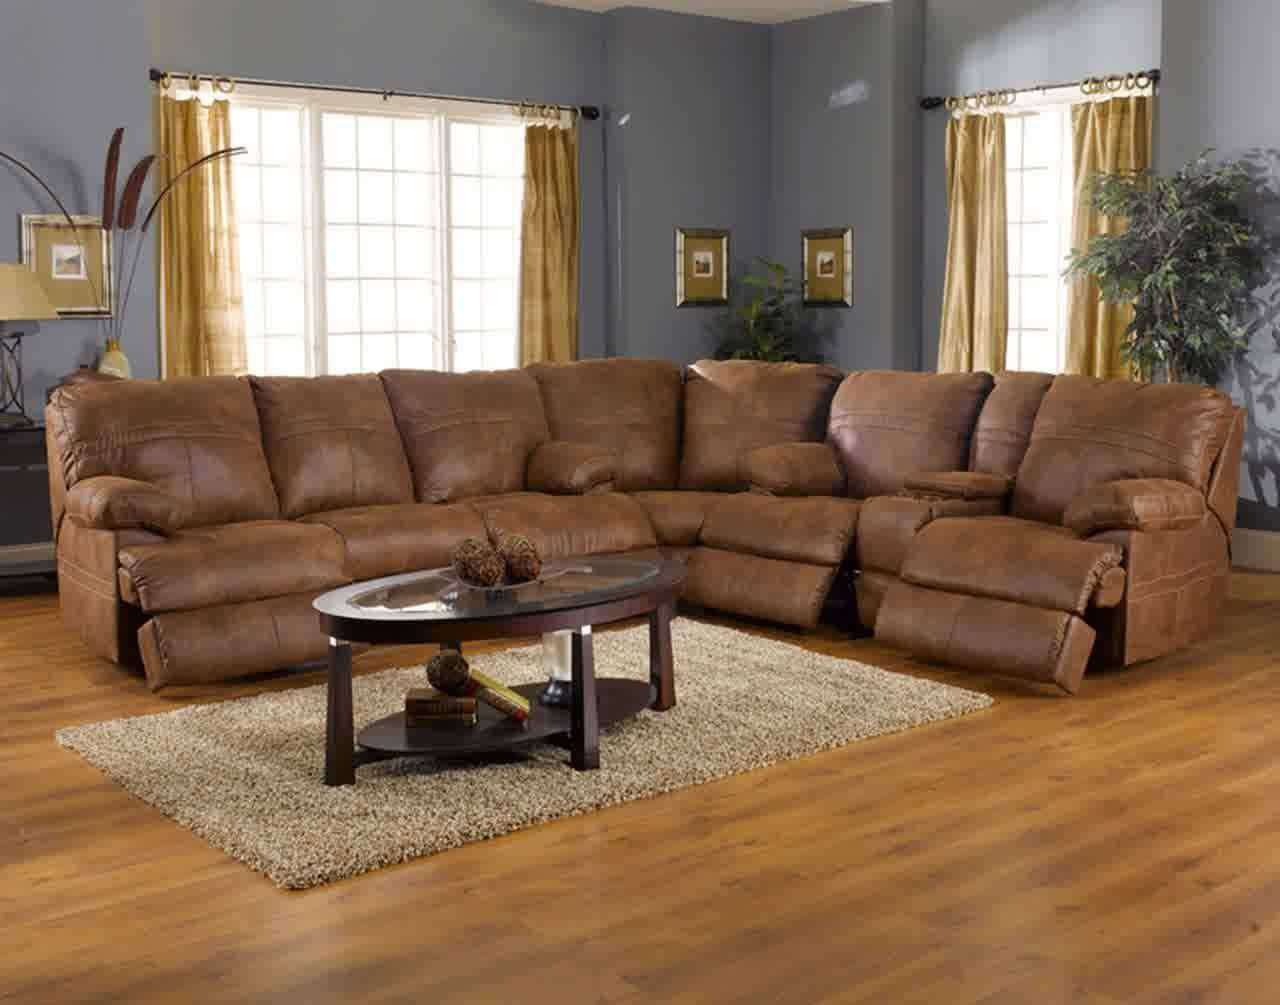 Recliner Sectional Sofa 2017 — Home Ideas Collection : Enjoy In throughout Recliner Sectional Sofas (Image 26 of 30)